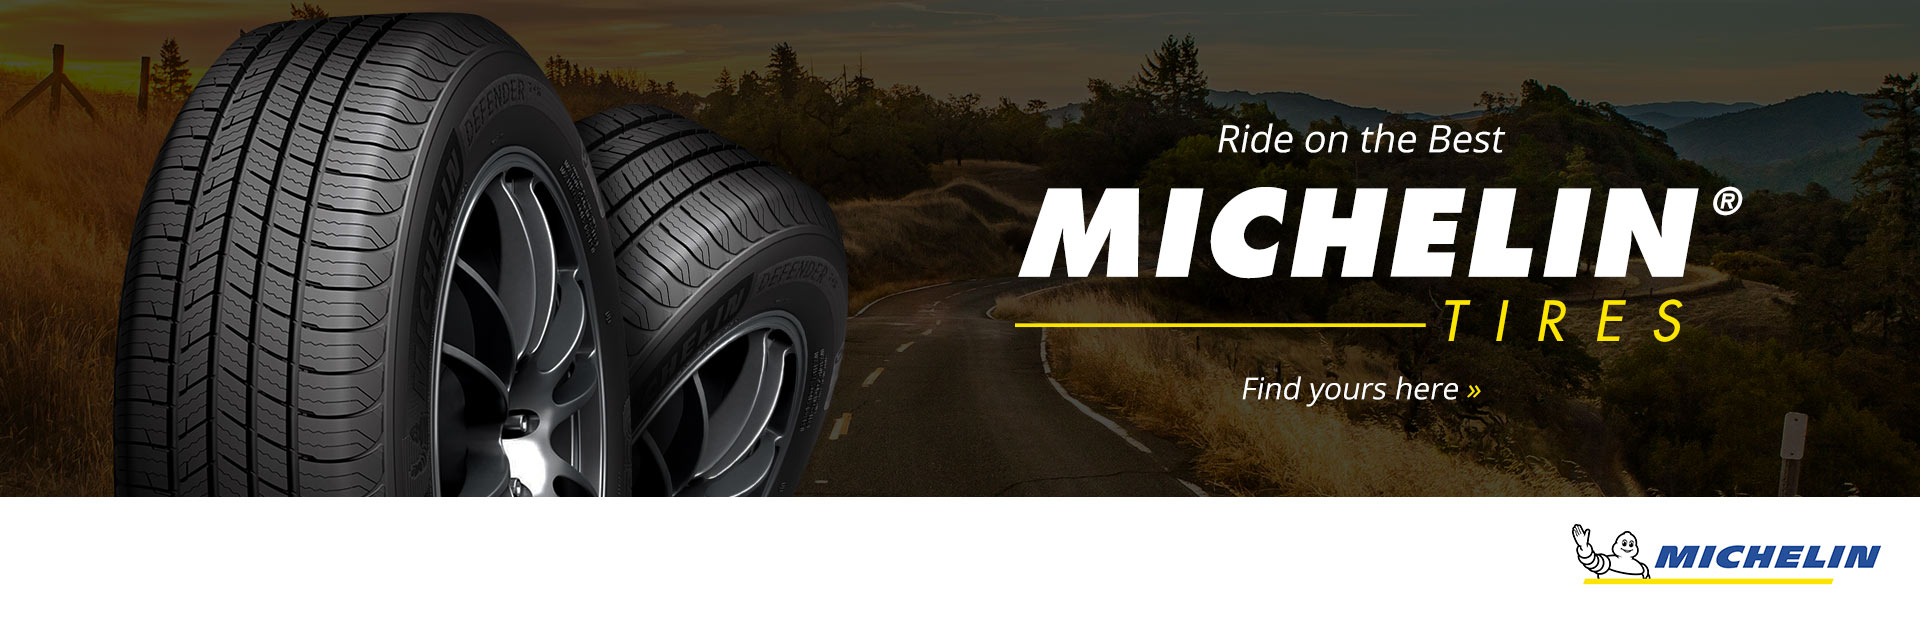 Jim Whaley Tires Michelin     Tires  Click here to browse